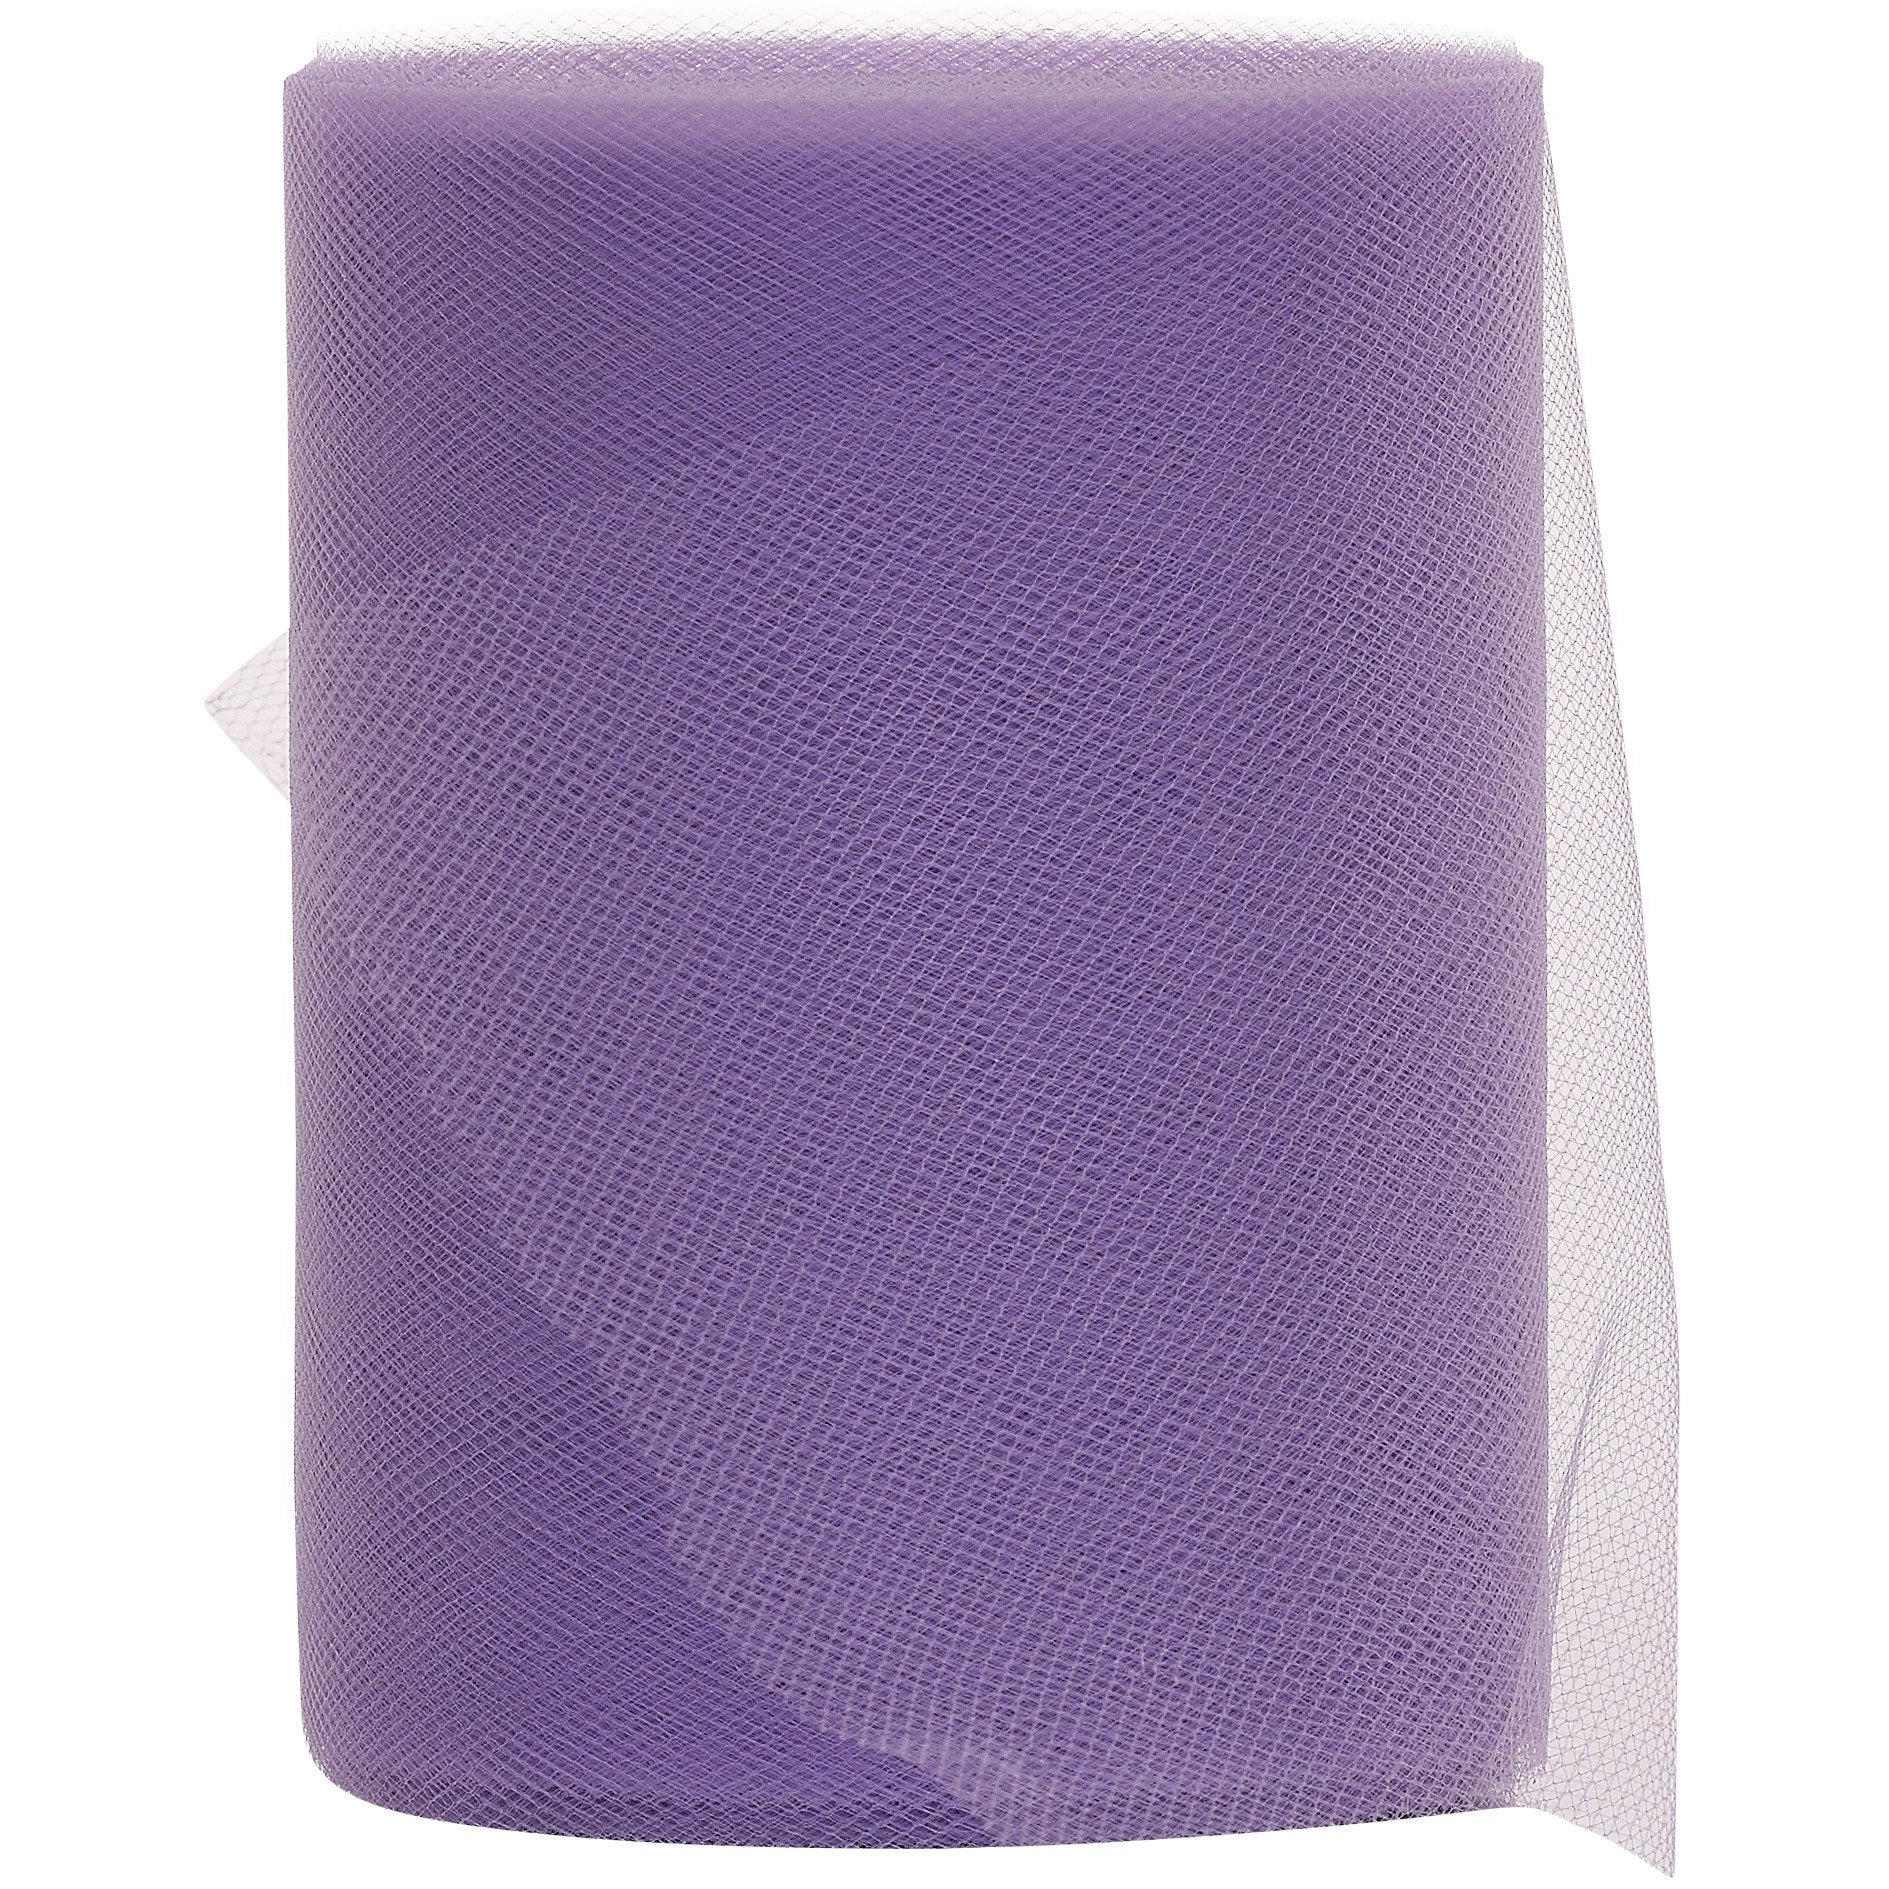 Light Purple (Lavender) Tulle Fabric Roll - 100 Yards